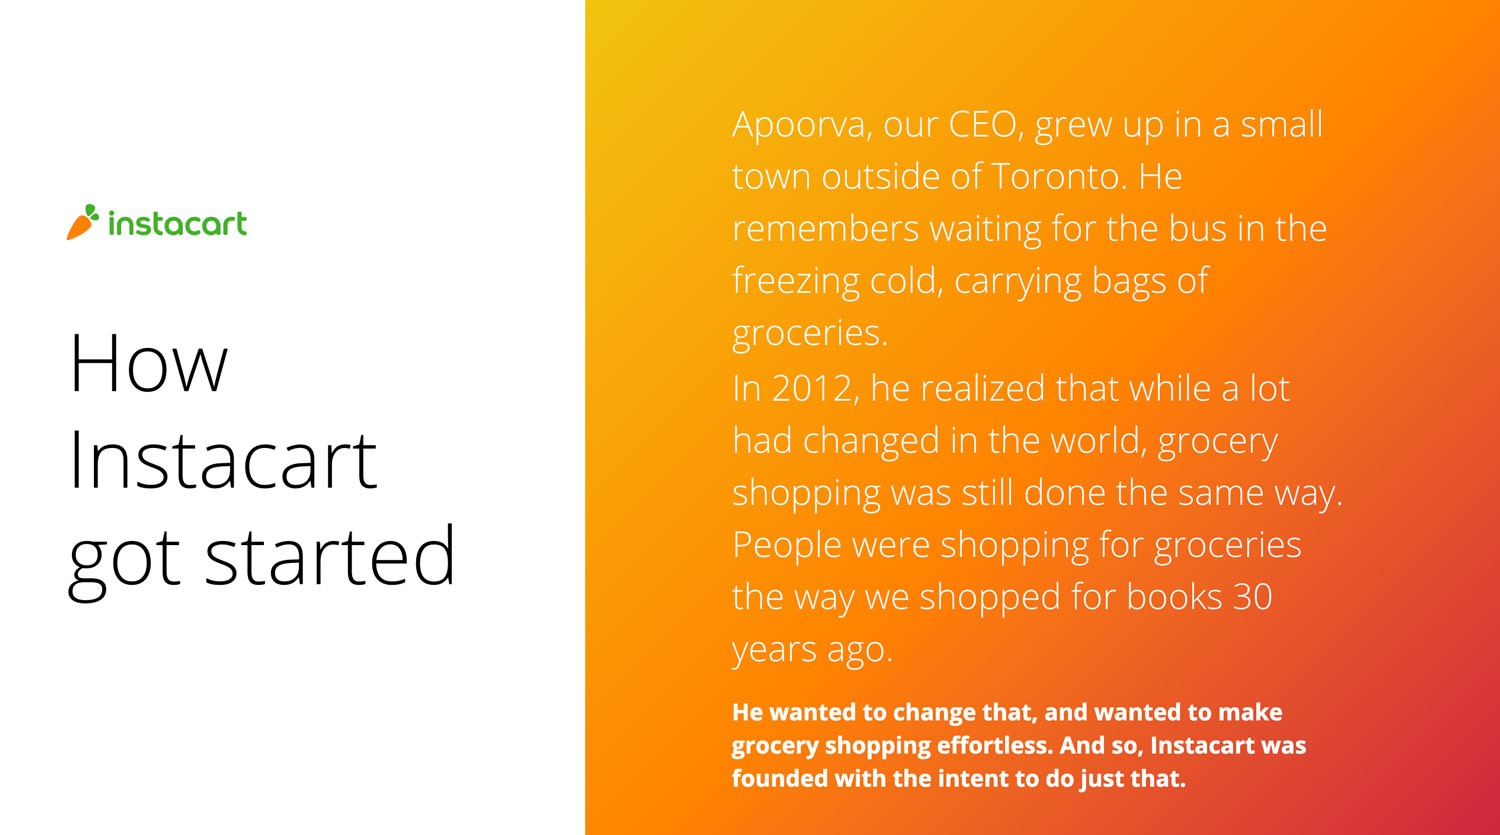 Screenshot from Marta and Colleen's presentation deck:  Title: How Instacart got started  Apoorva, our CEO, grew up in a small town outside of Toronto. He remembers waiting for the bus in the freezing cold, carrying bags of groceries. In 2012, he realized that while a lot had changed in the world, grocery shopping was still done the same way. People were shopping for groceries the way we shopped for books 30 years ago. He wanted to change that, and wanted to make grocery shopping effortless. And so, Instacart was founded with the intent to do just that.